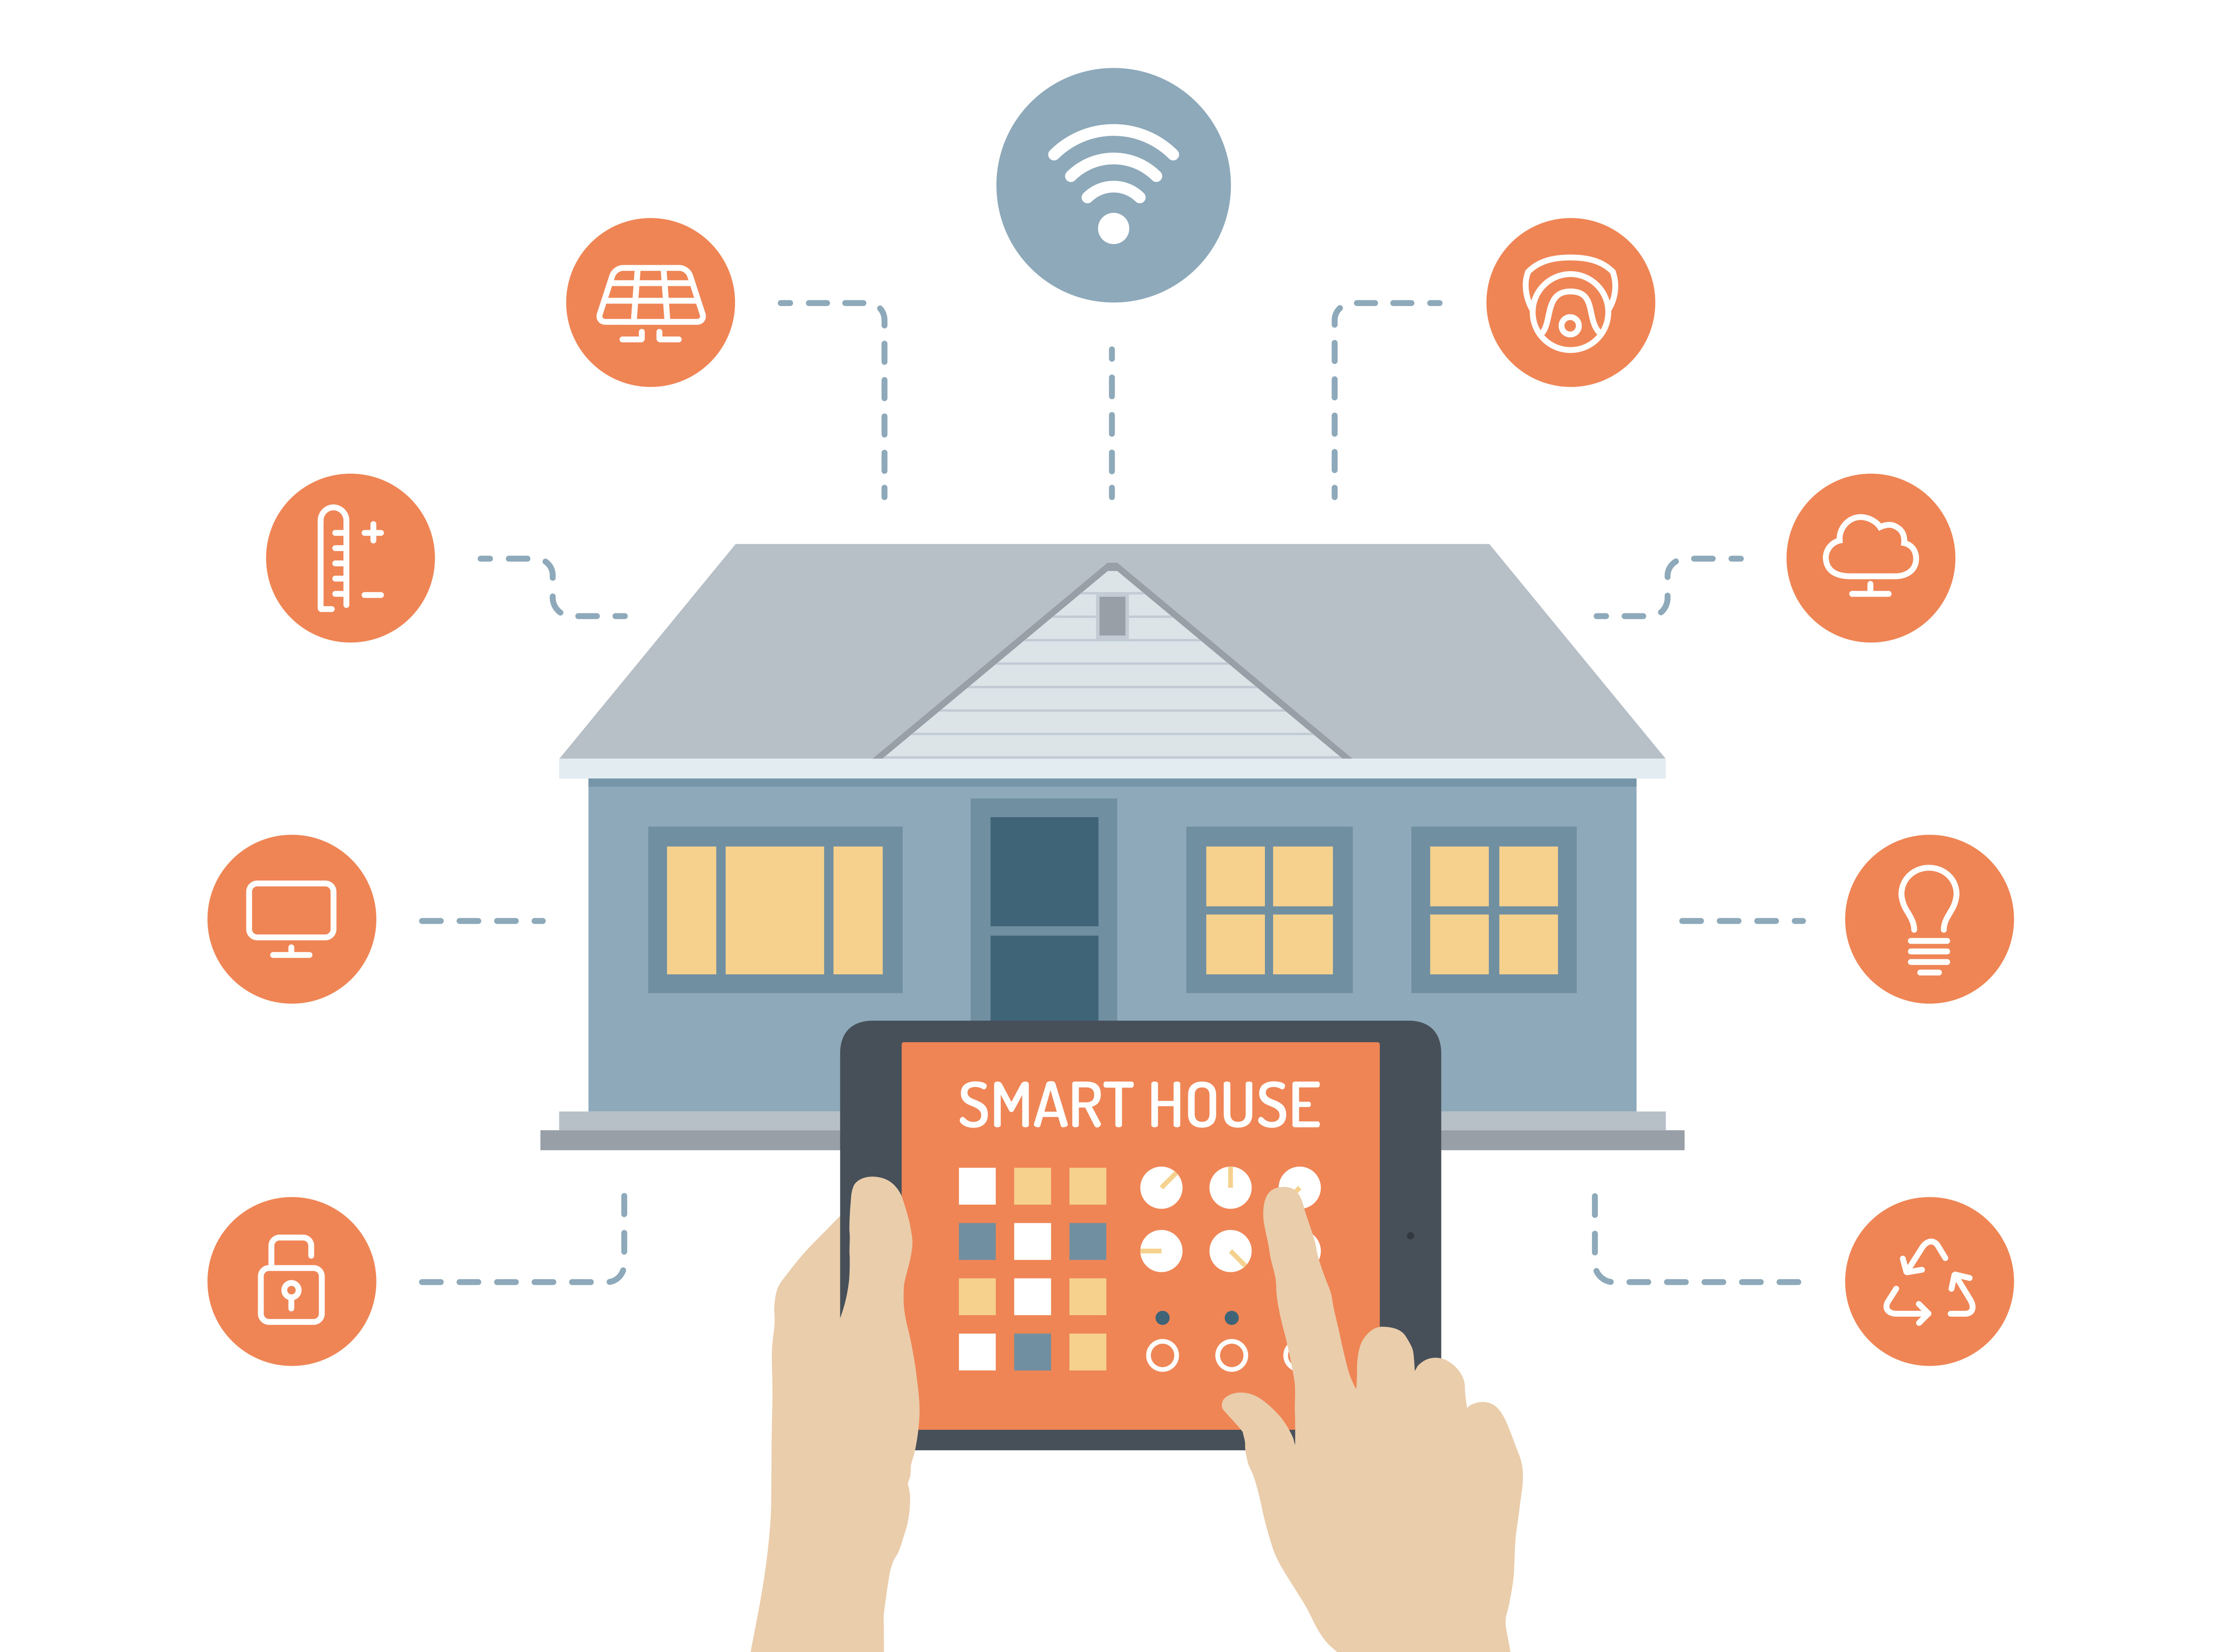 Use of Smart Home Tech Gadgets